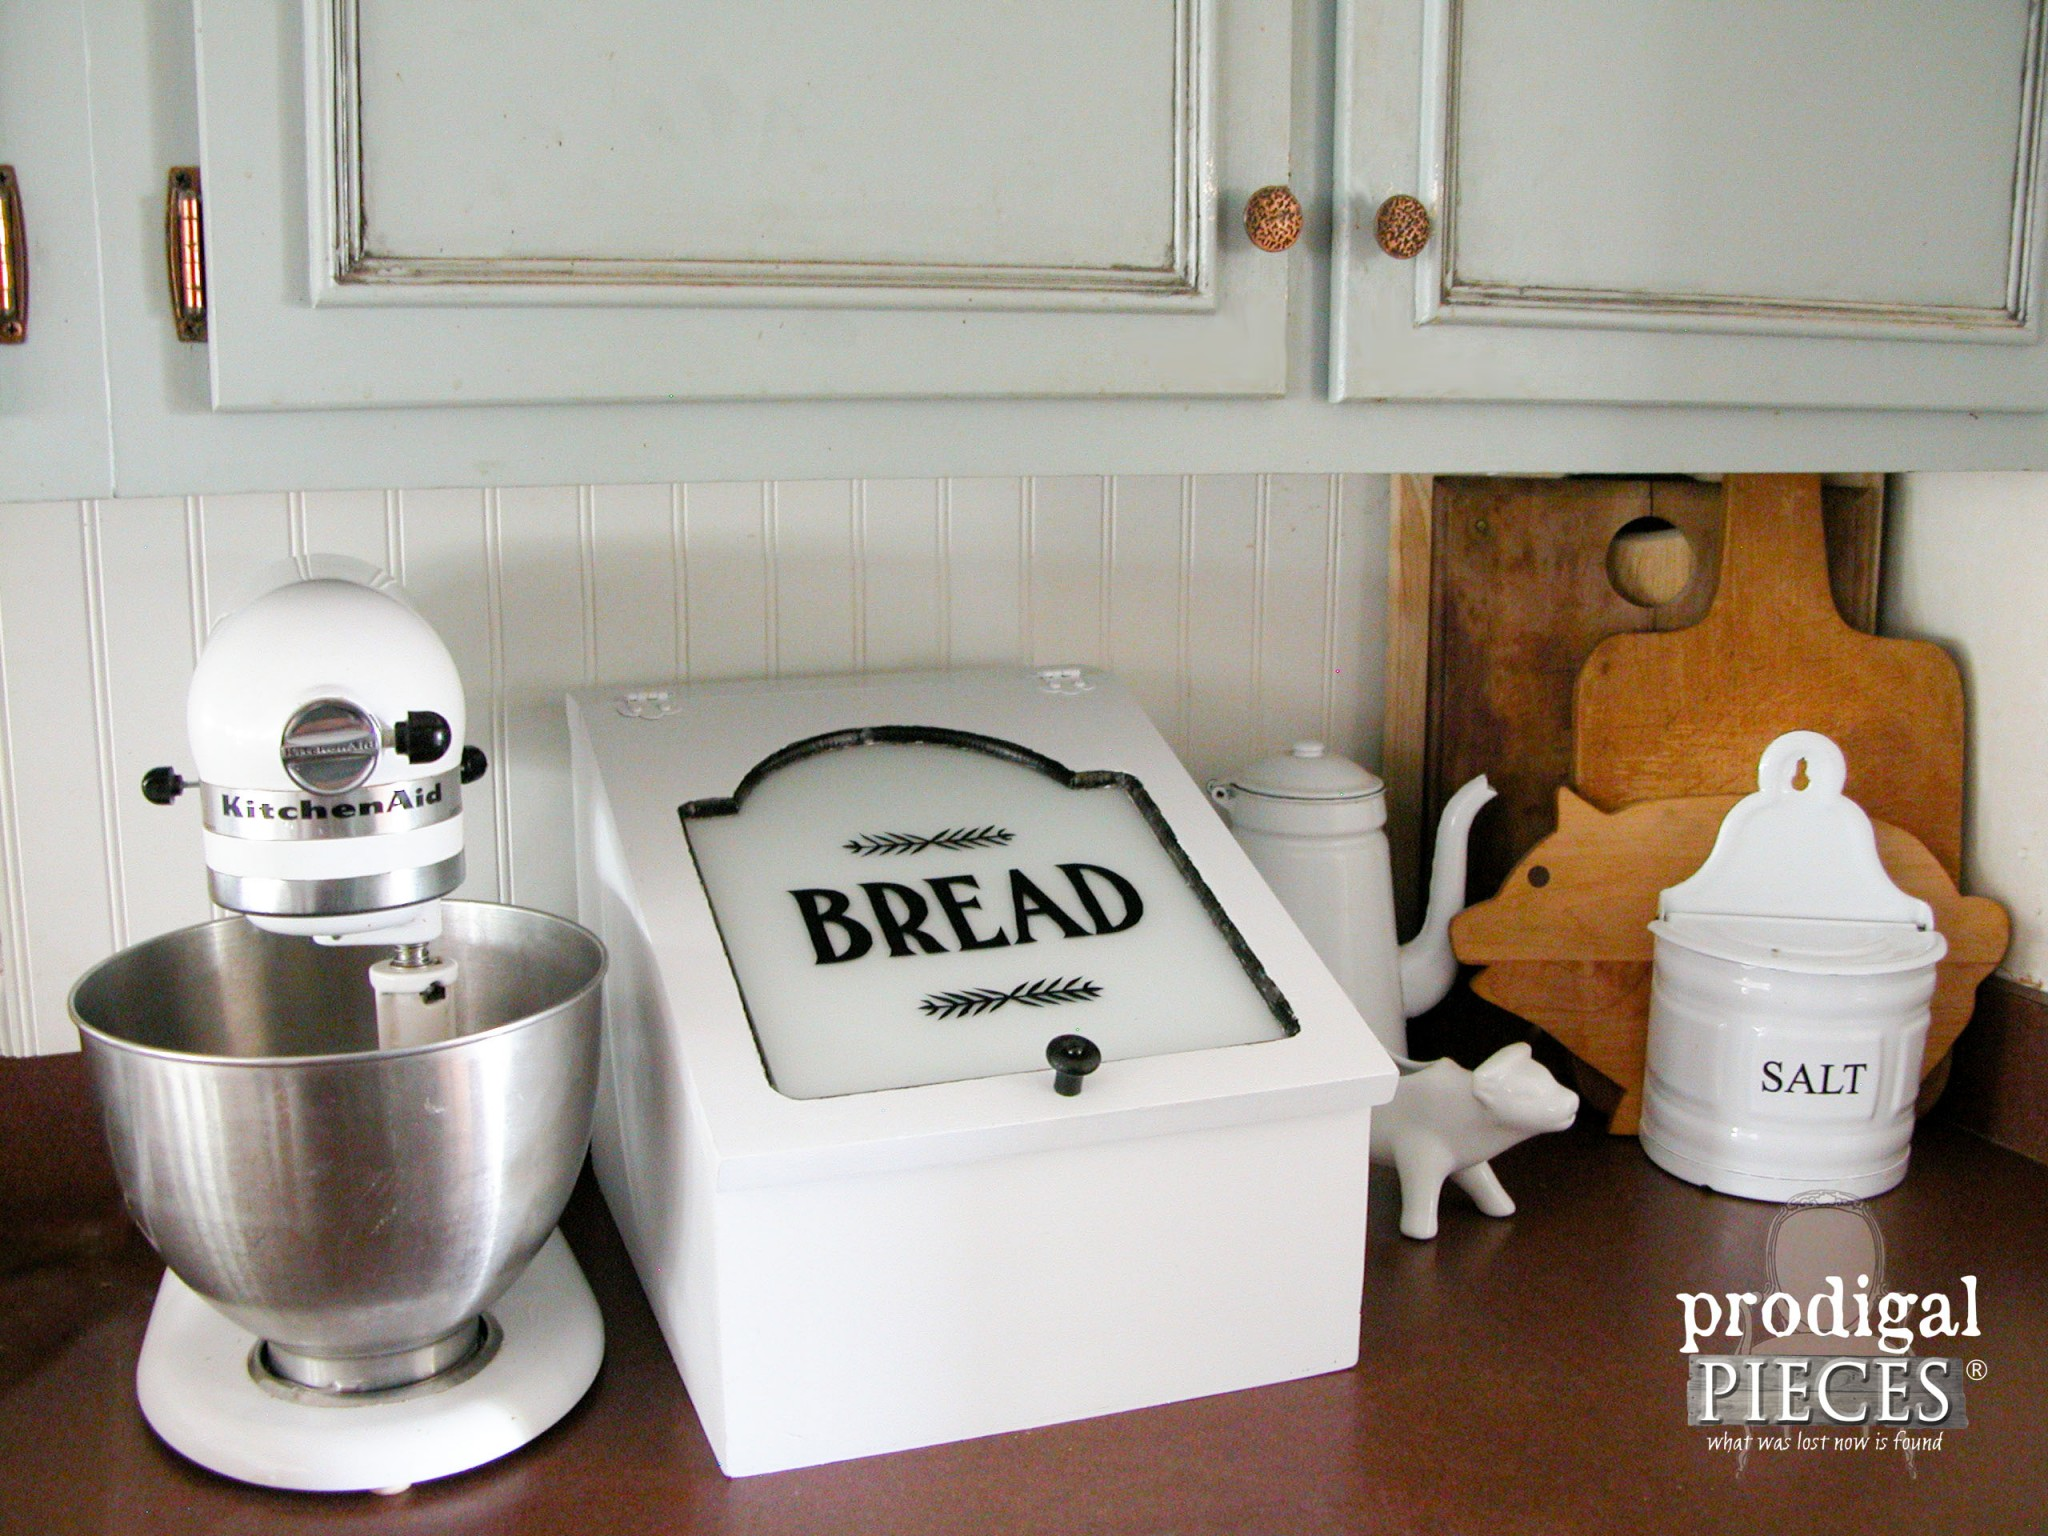 Farmhouse Style Repurposed Bread Box Charging Station by Prodigal Pieces | www.prodigalpieces.com